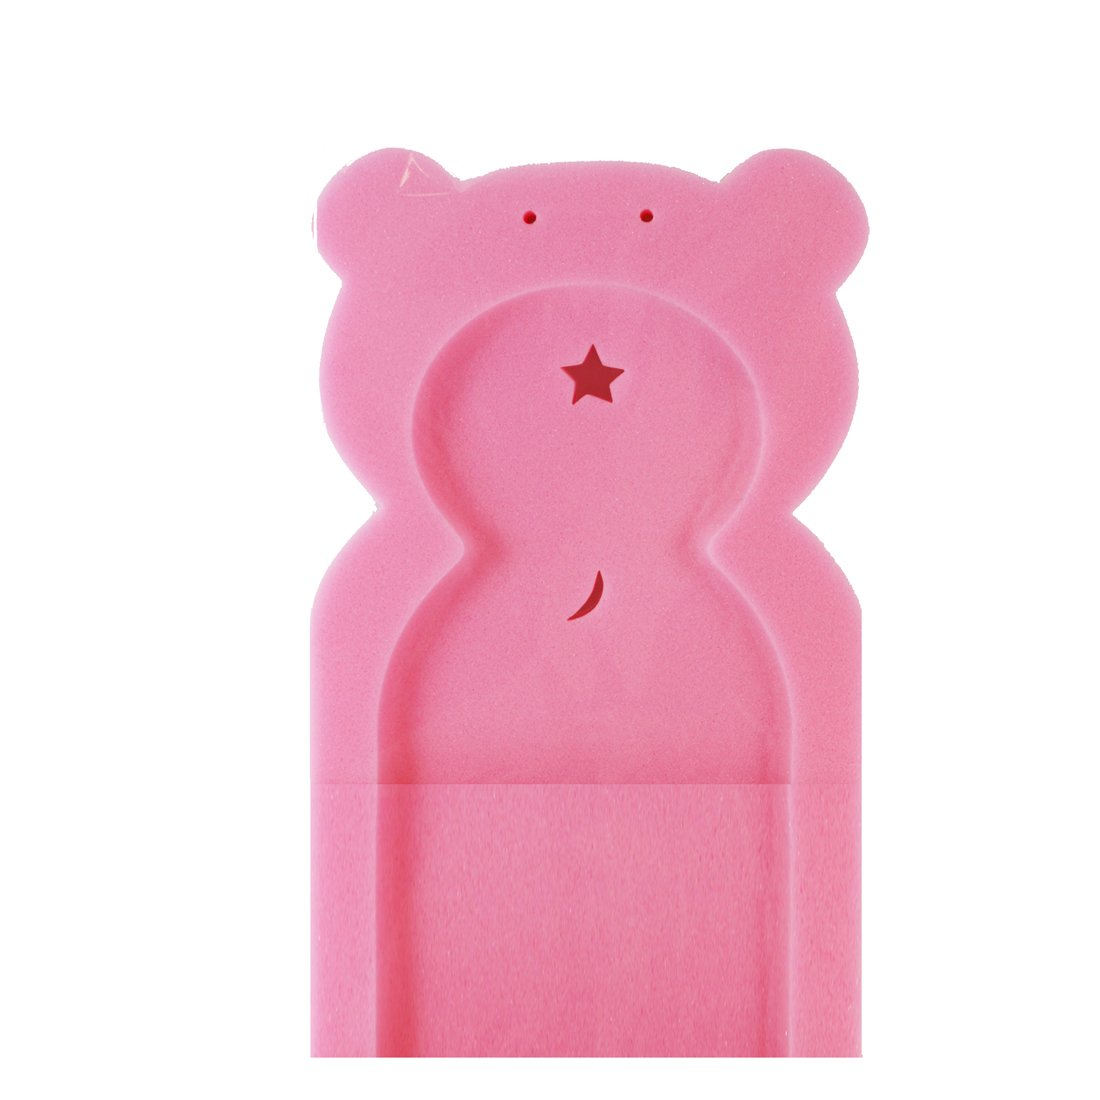 First Steps Baby Bath Sponge Support in Teddy Bear Shape for Babies from Newborn Pink FS324